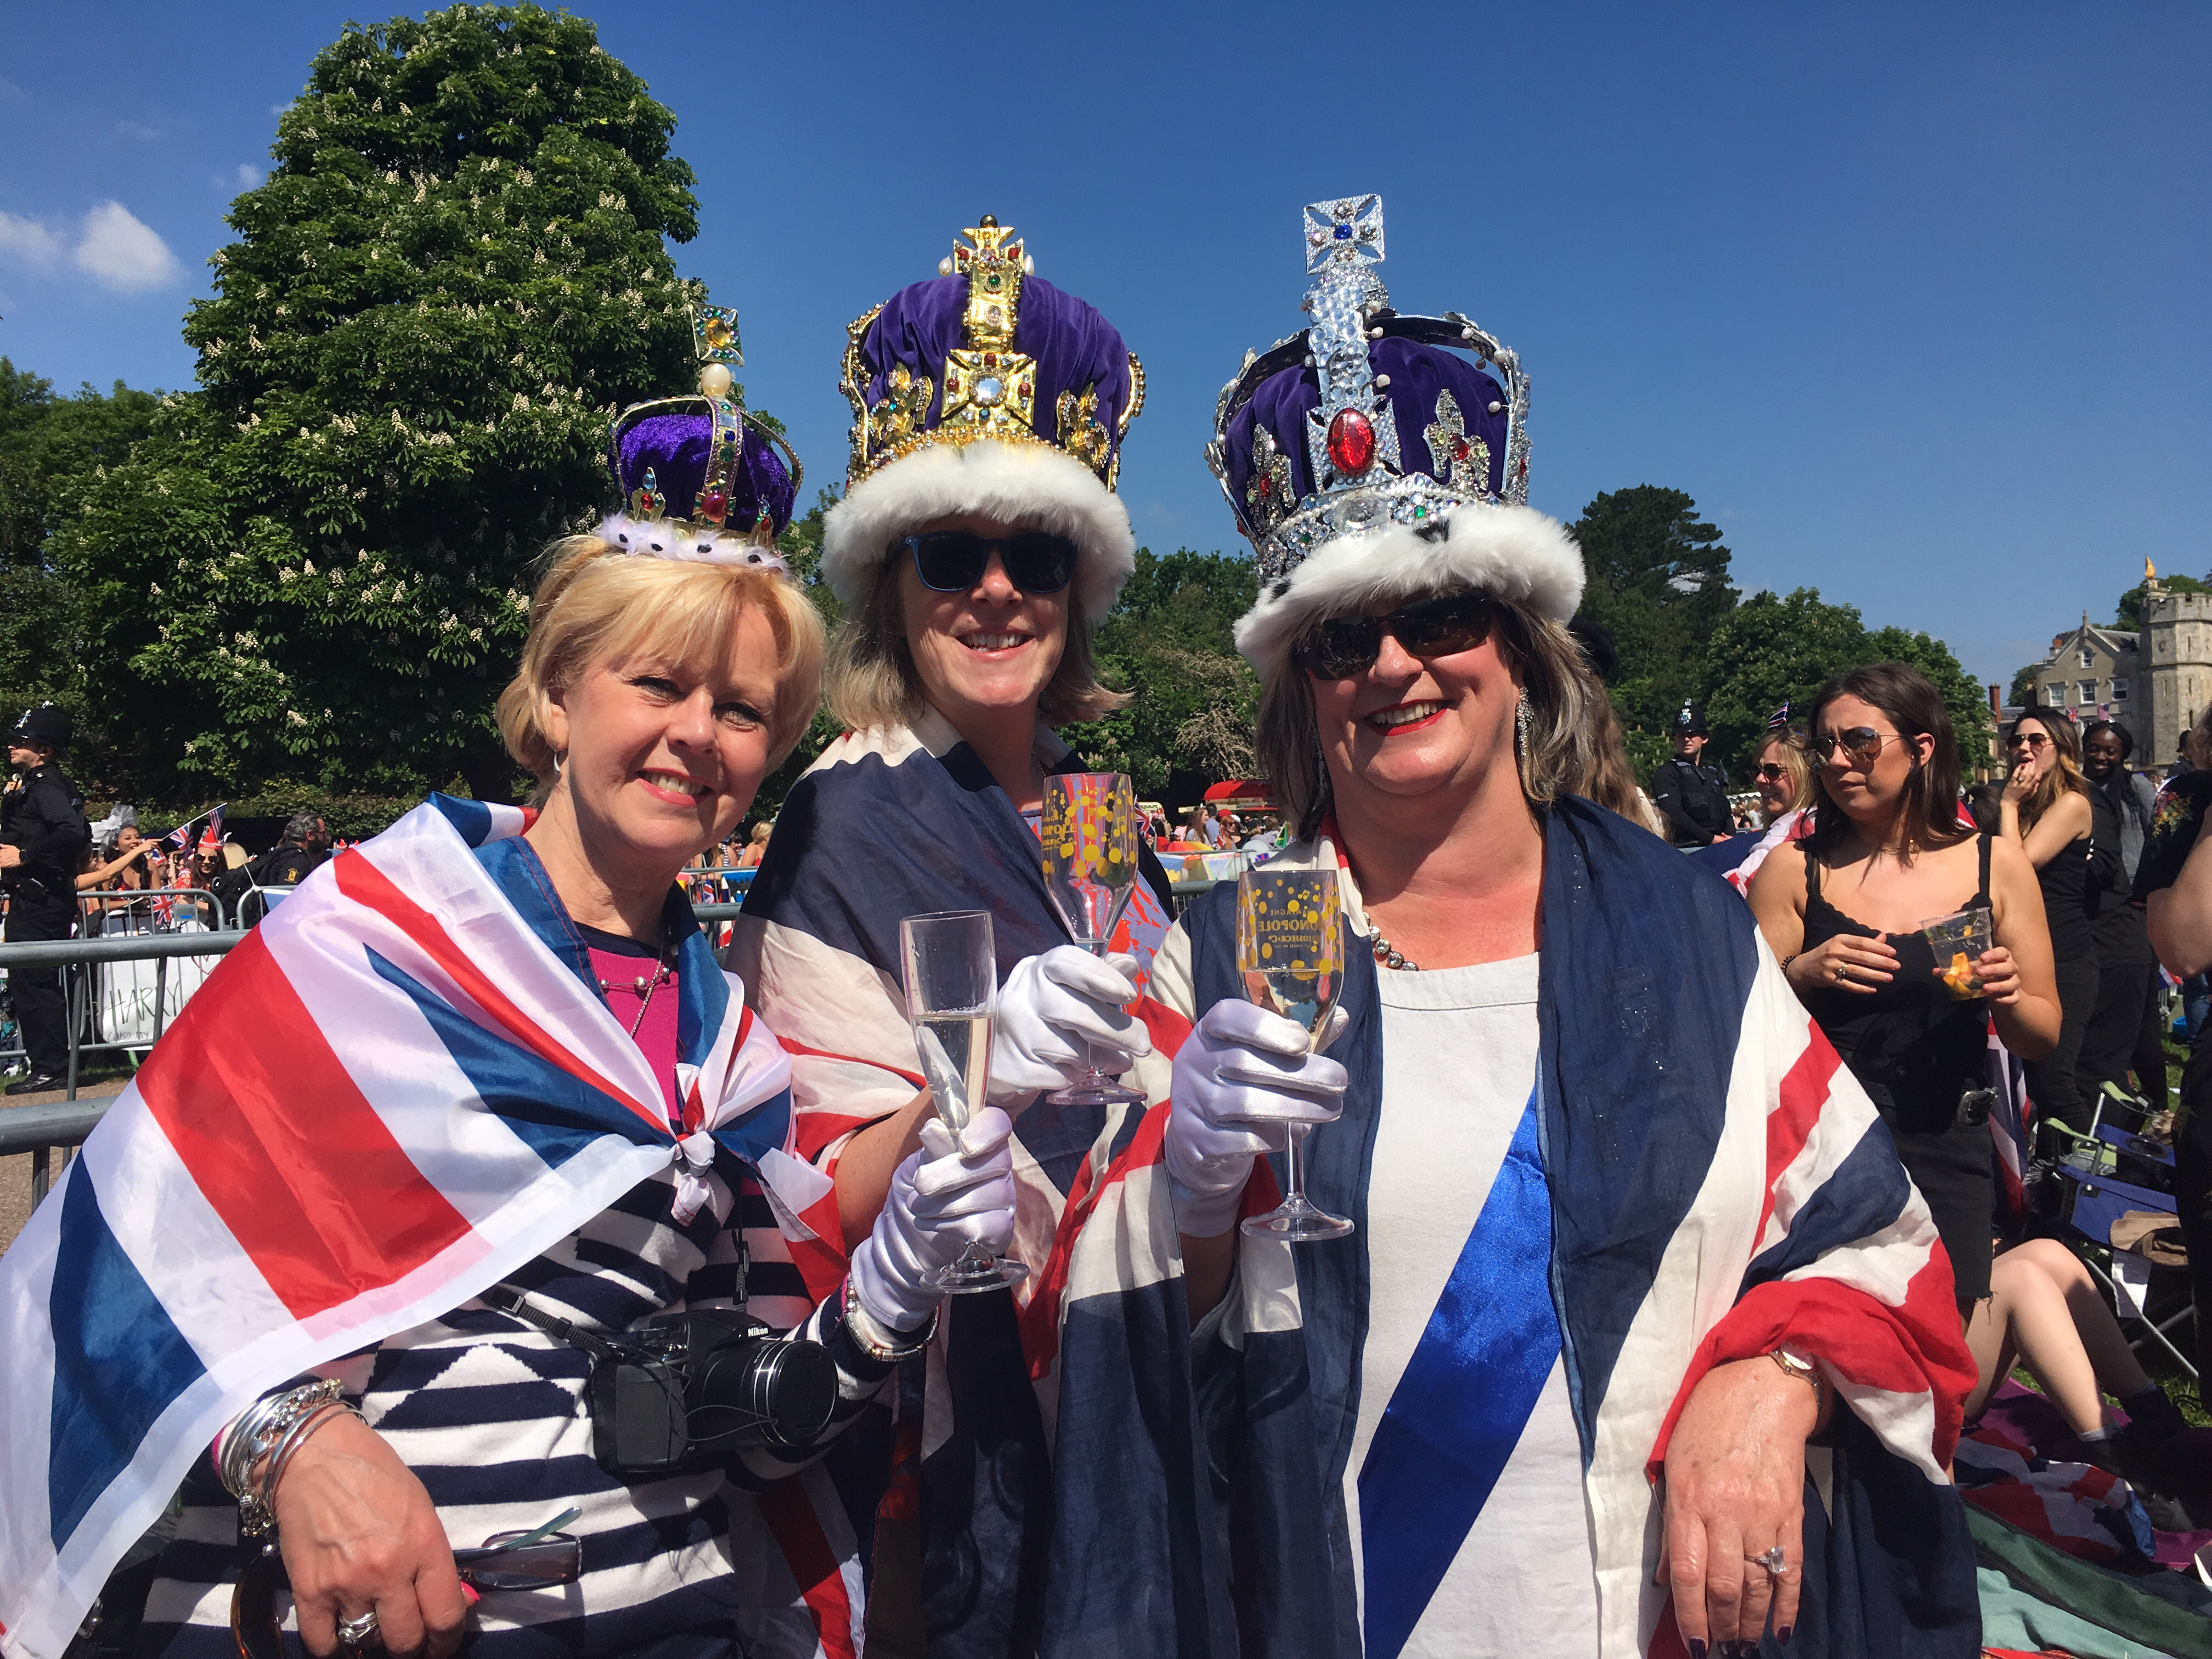 Jean Hood, Rebecca Hilliard and Caroline Wagstaff, residents of Windsor, among the crowds leading up to Windsor Castle on May 19, 2018.